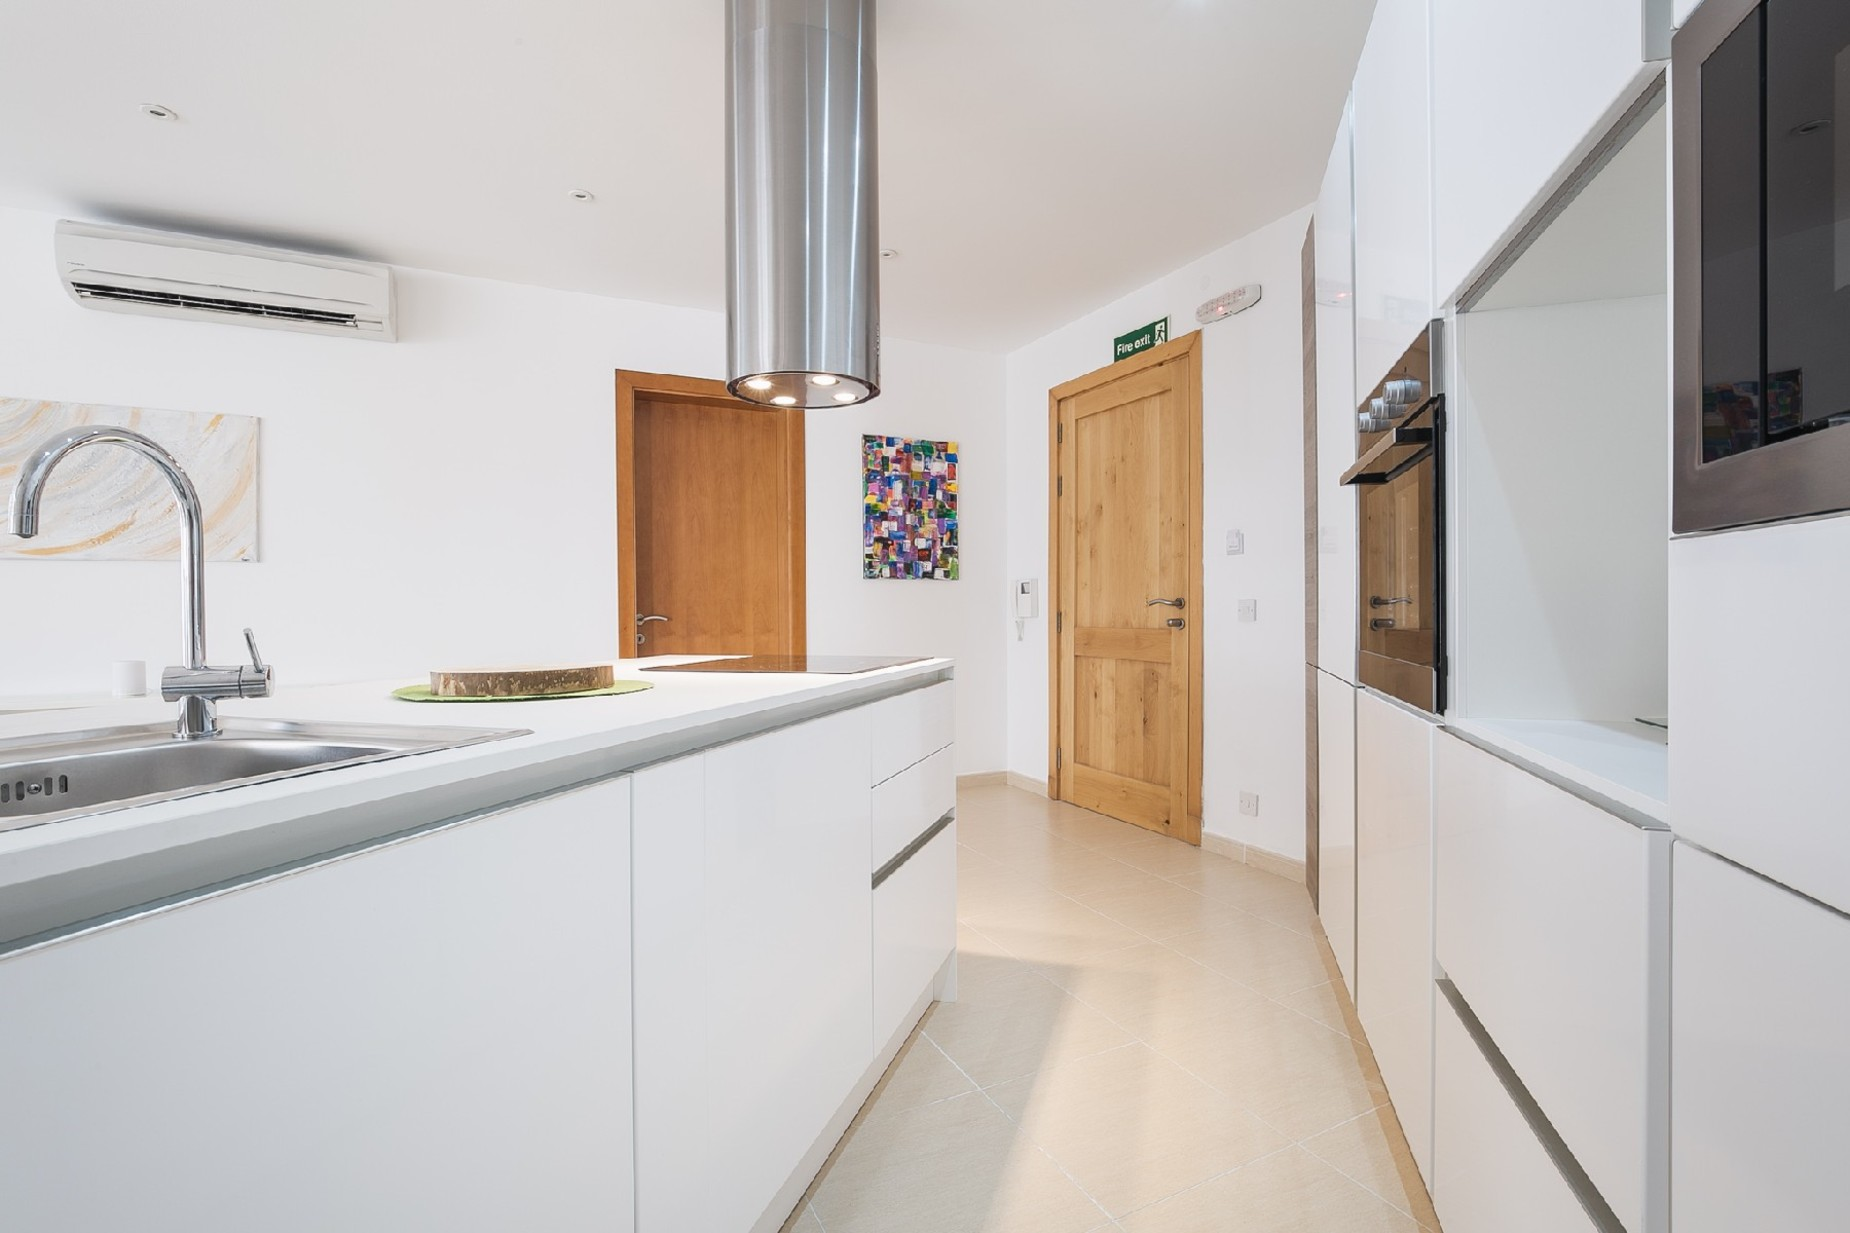 2 bed Apartment For Rent in Mellieha, Mellieha - thumb 8